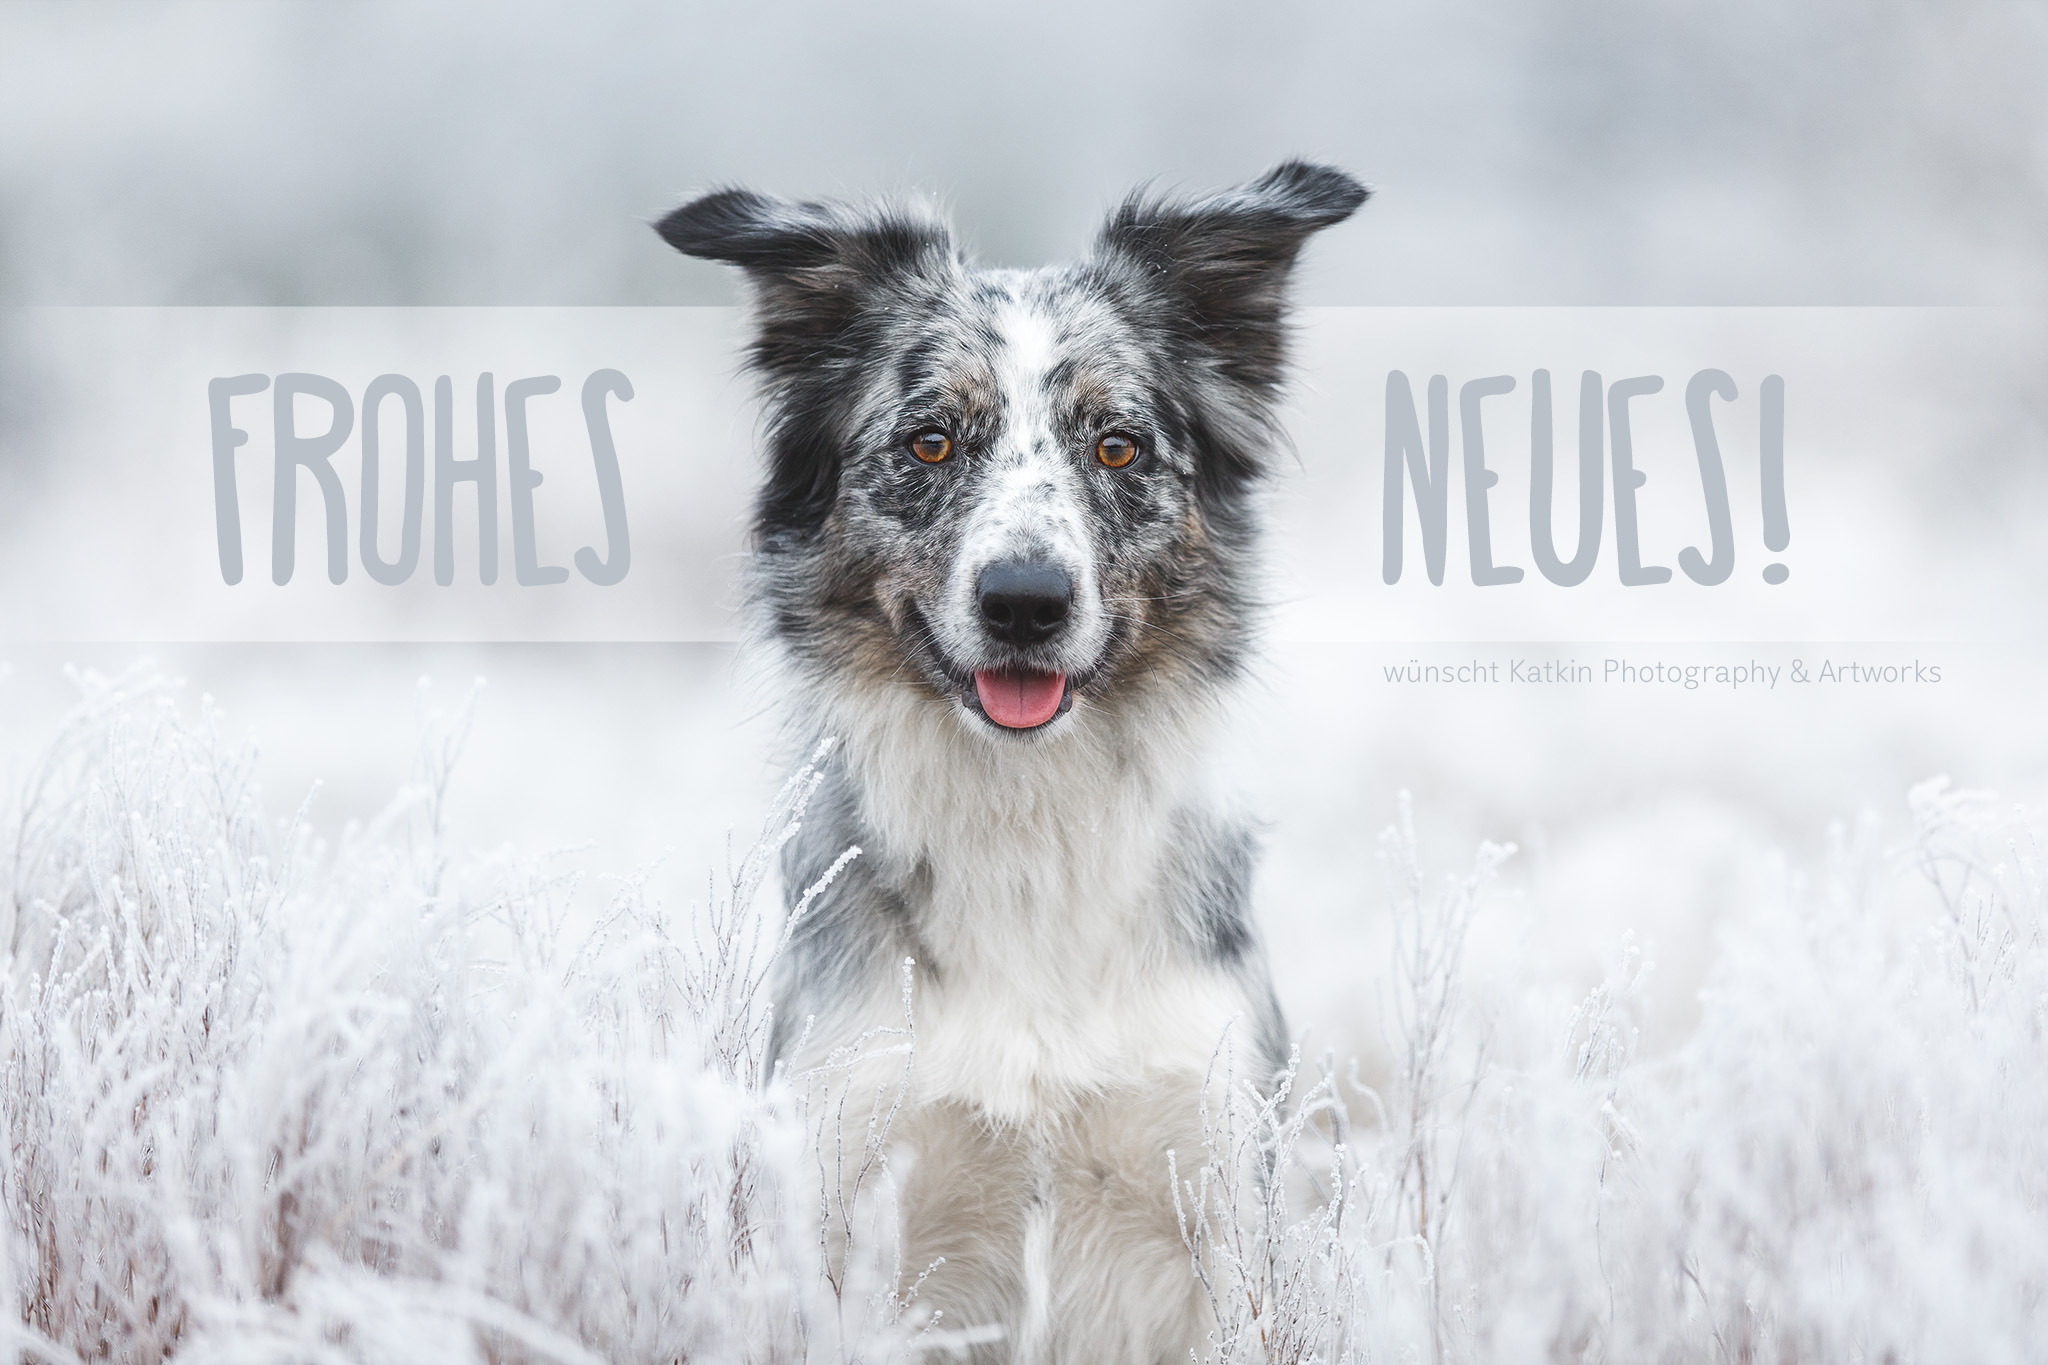 Rumie Frohes Neues